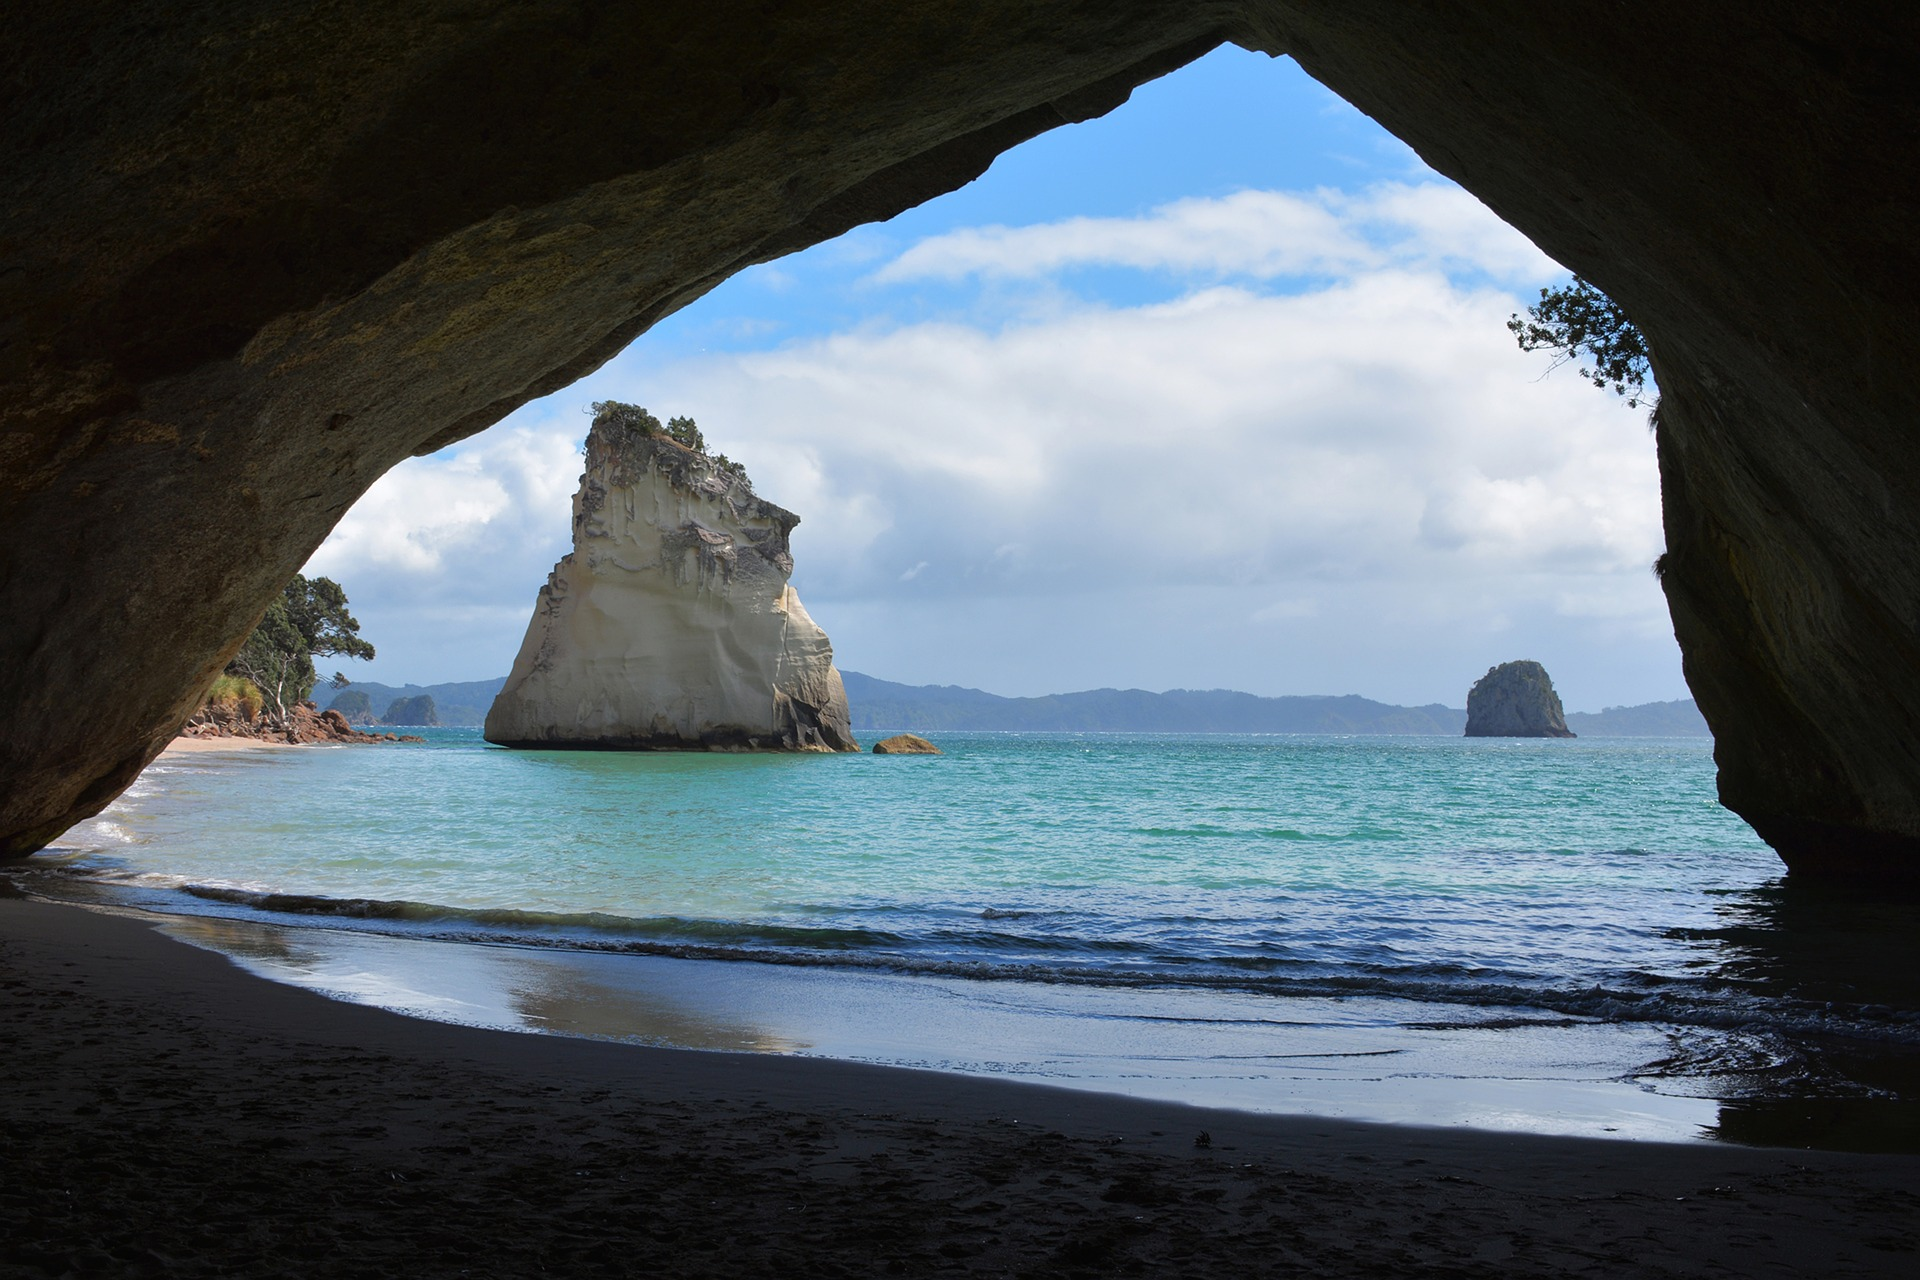 cathedral-cove-1592274_1920.jpg